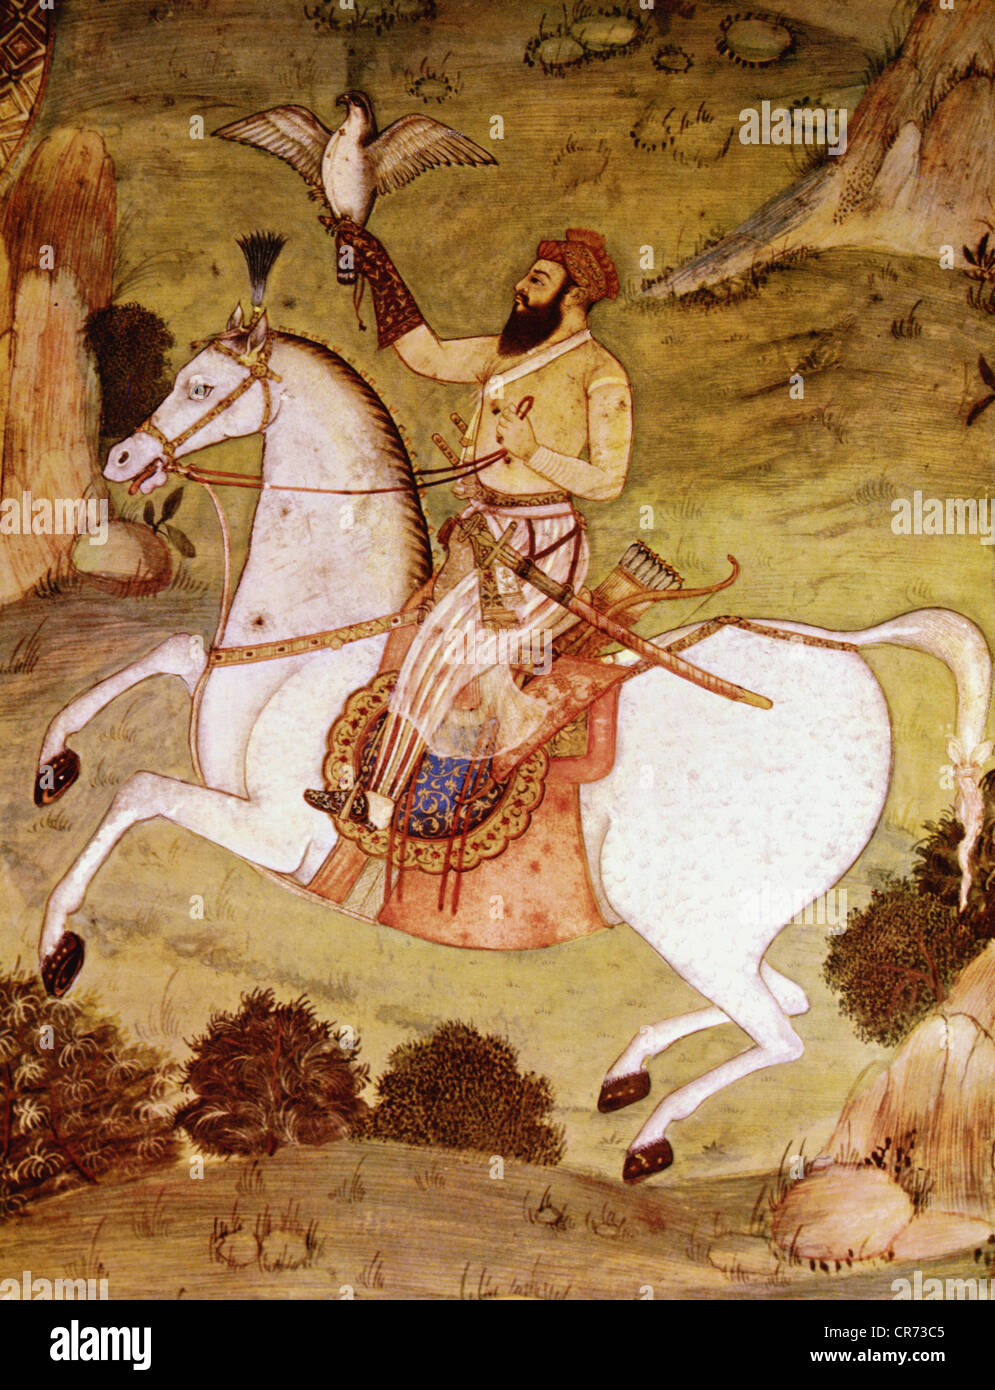 Shah Jahan, 5.1.1592 - 22.1.1666, Mughal Emperor of India 1627 - 1658, half length, during falconry, miniature painting, - Stock Image